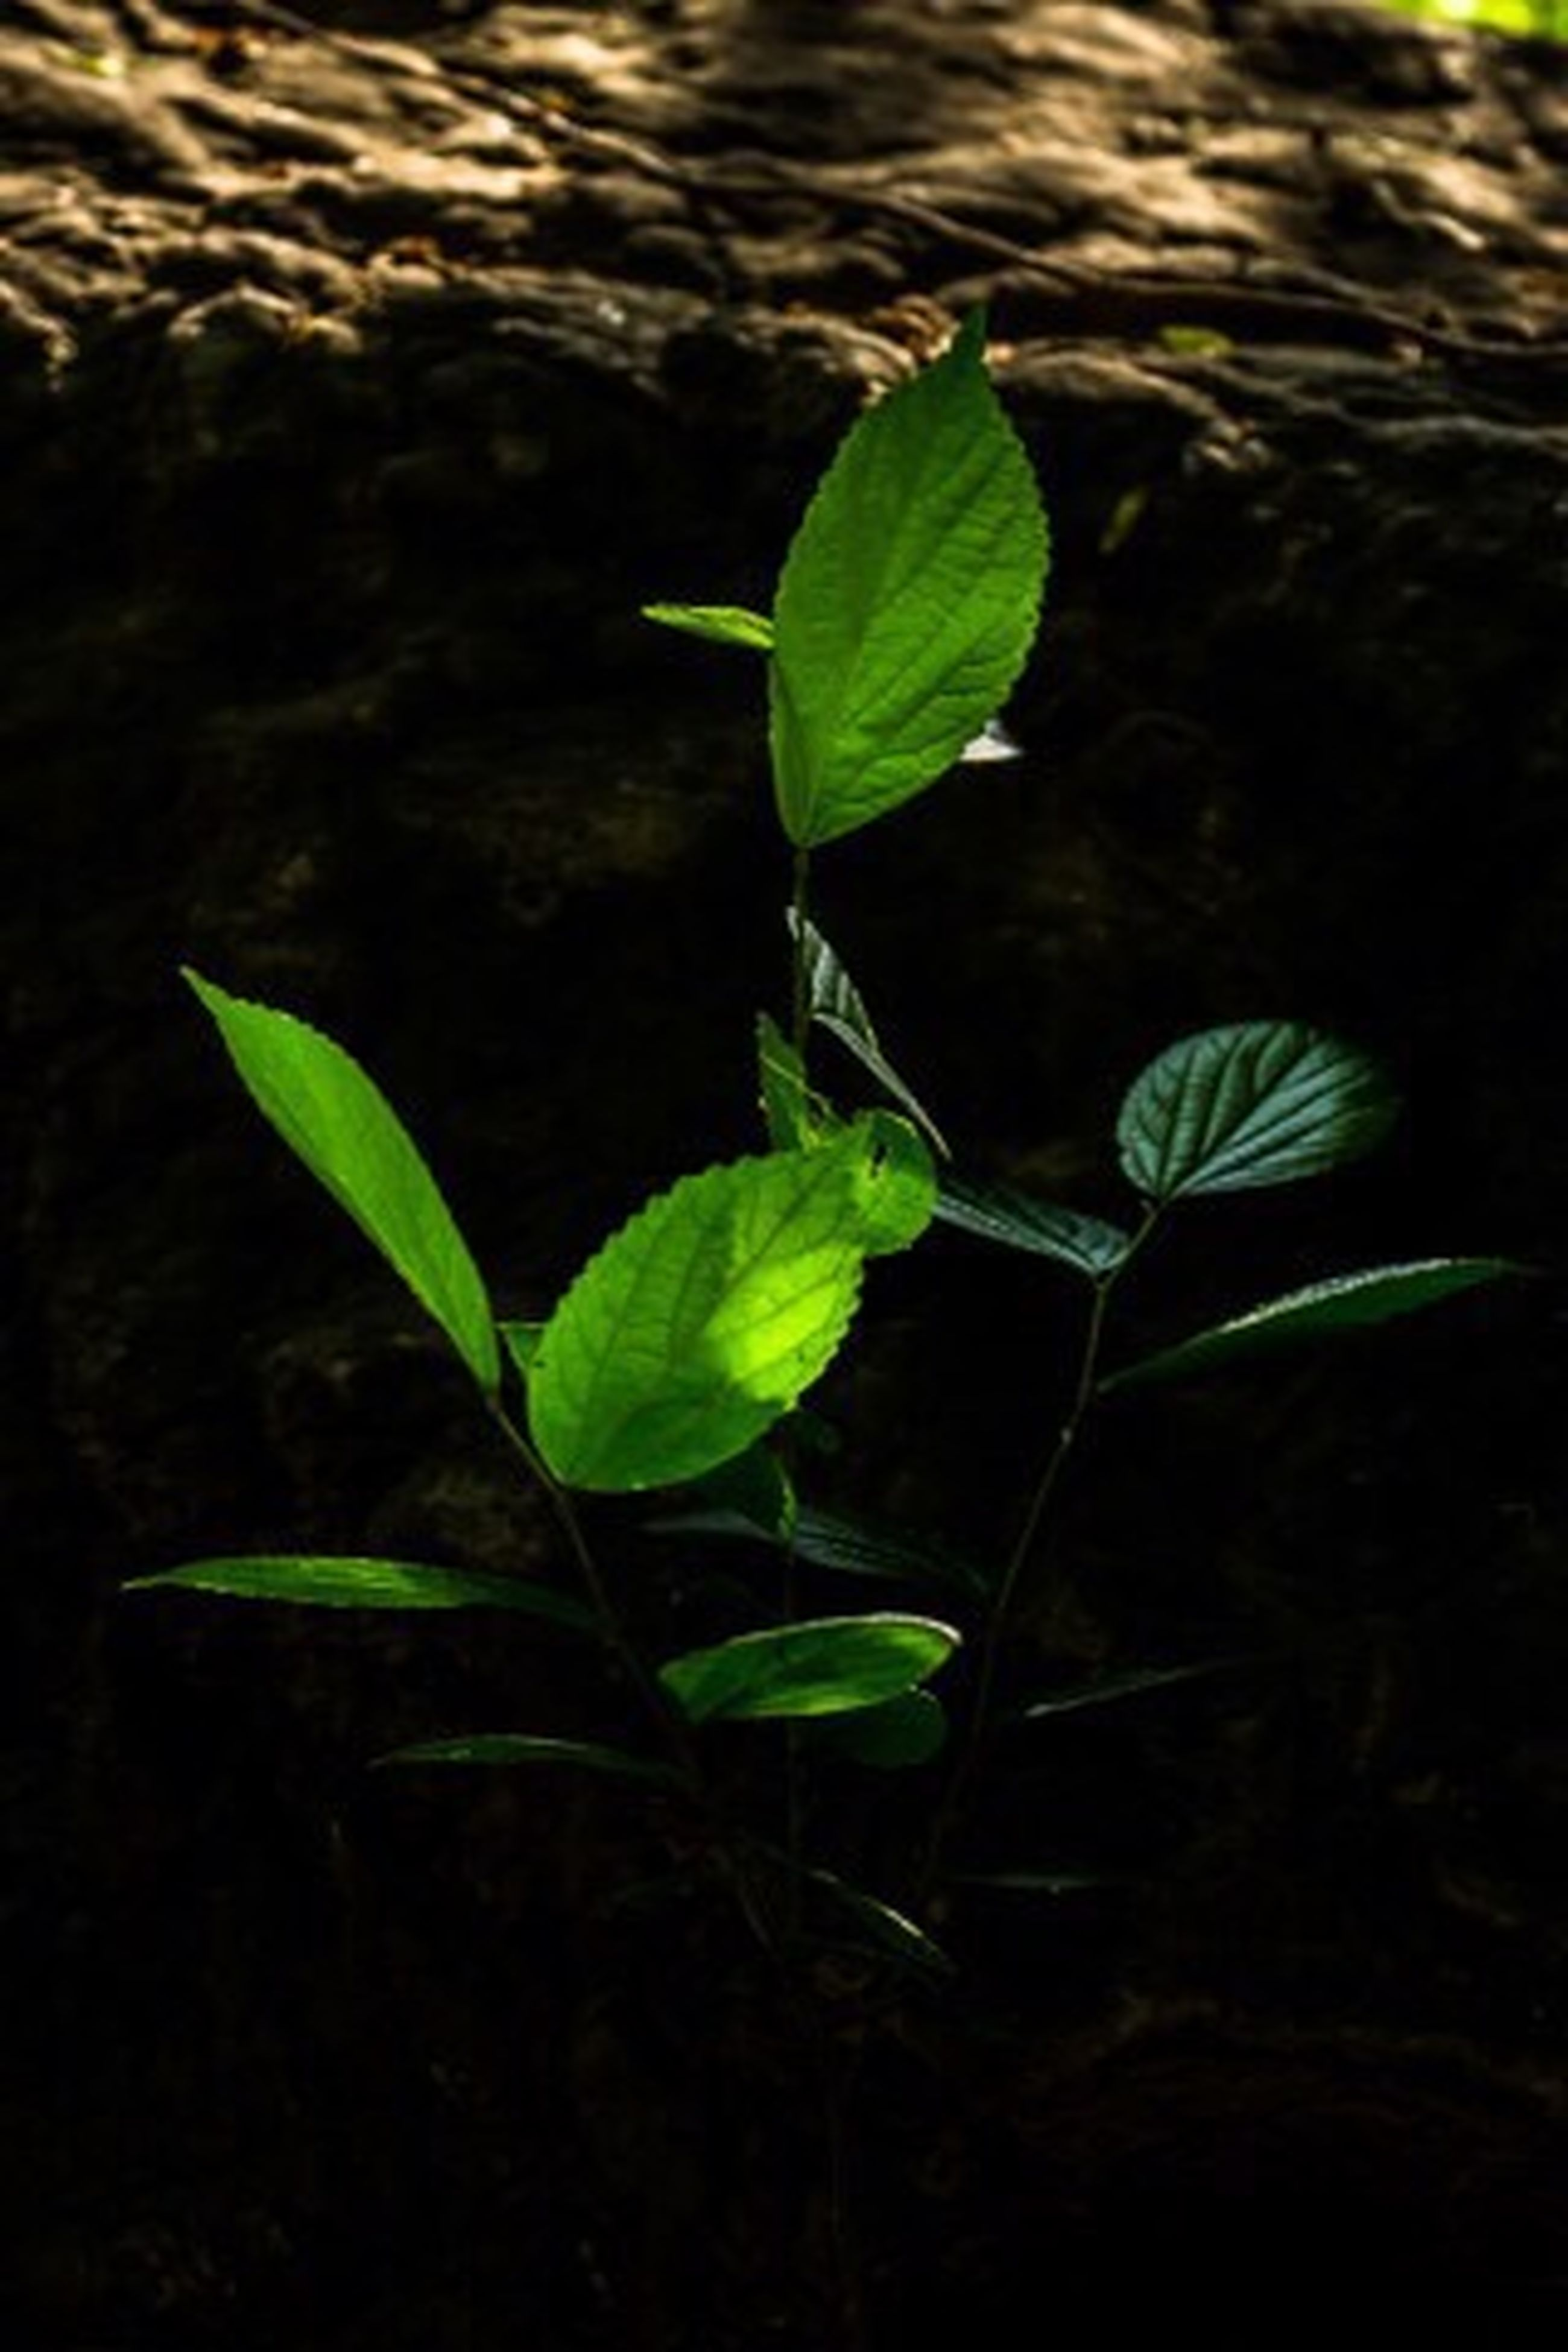 leaf, growth, plant, green color, nature, close-up, stem, freshness, beauty in nature, water, growing, bud, beginnings, green, focus on foreground, fragility, outdoors, no people, new life, day